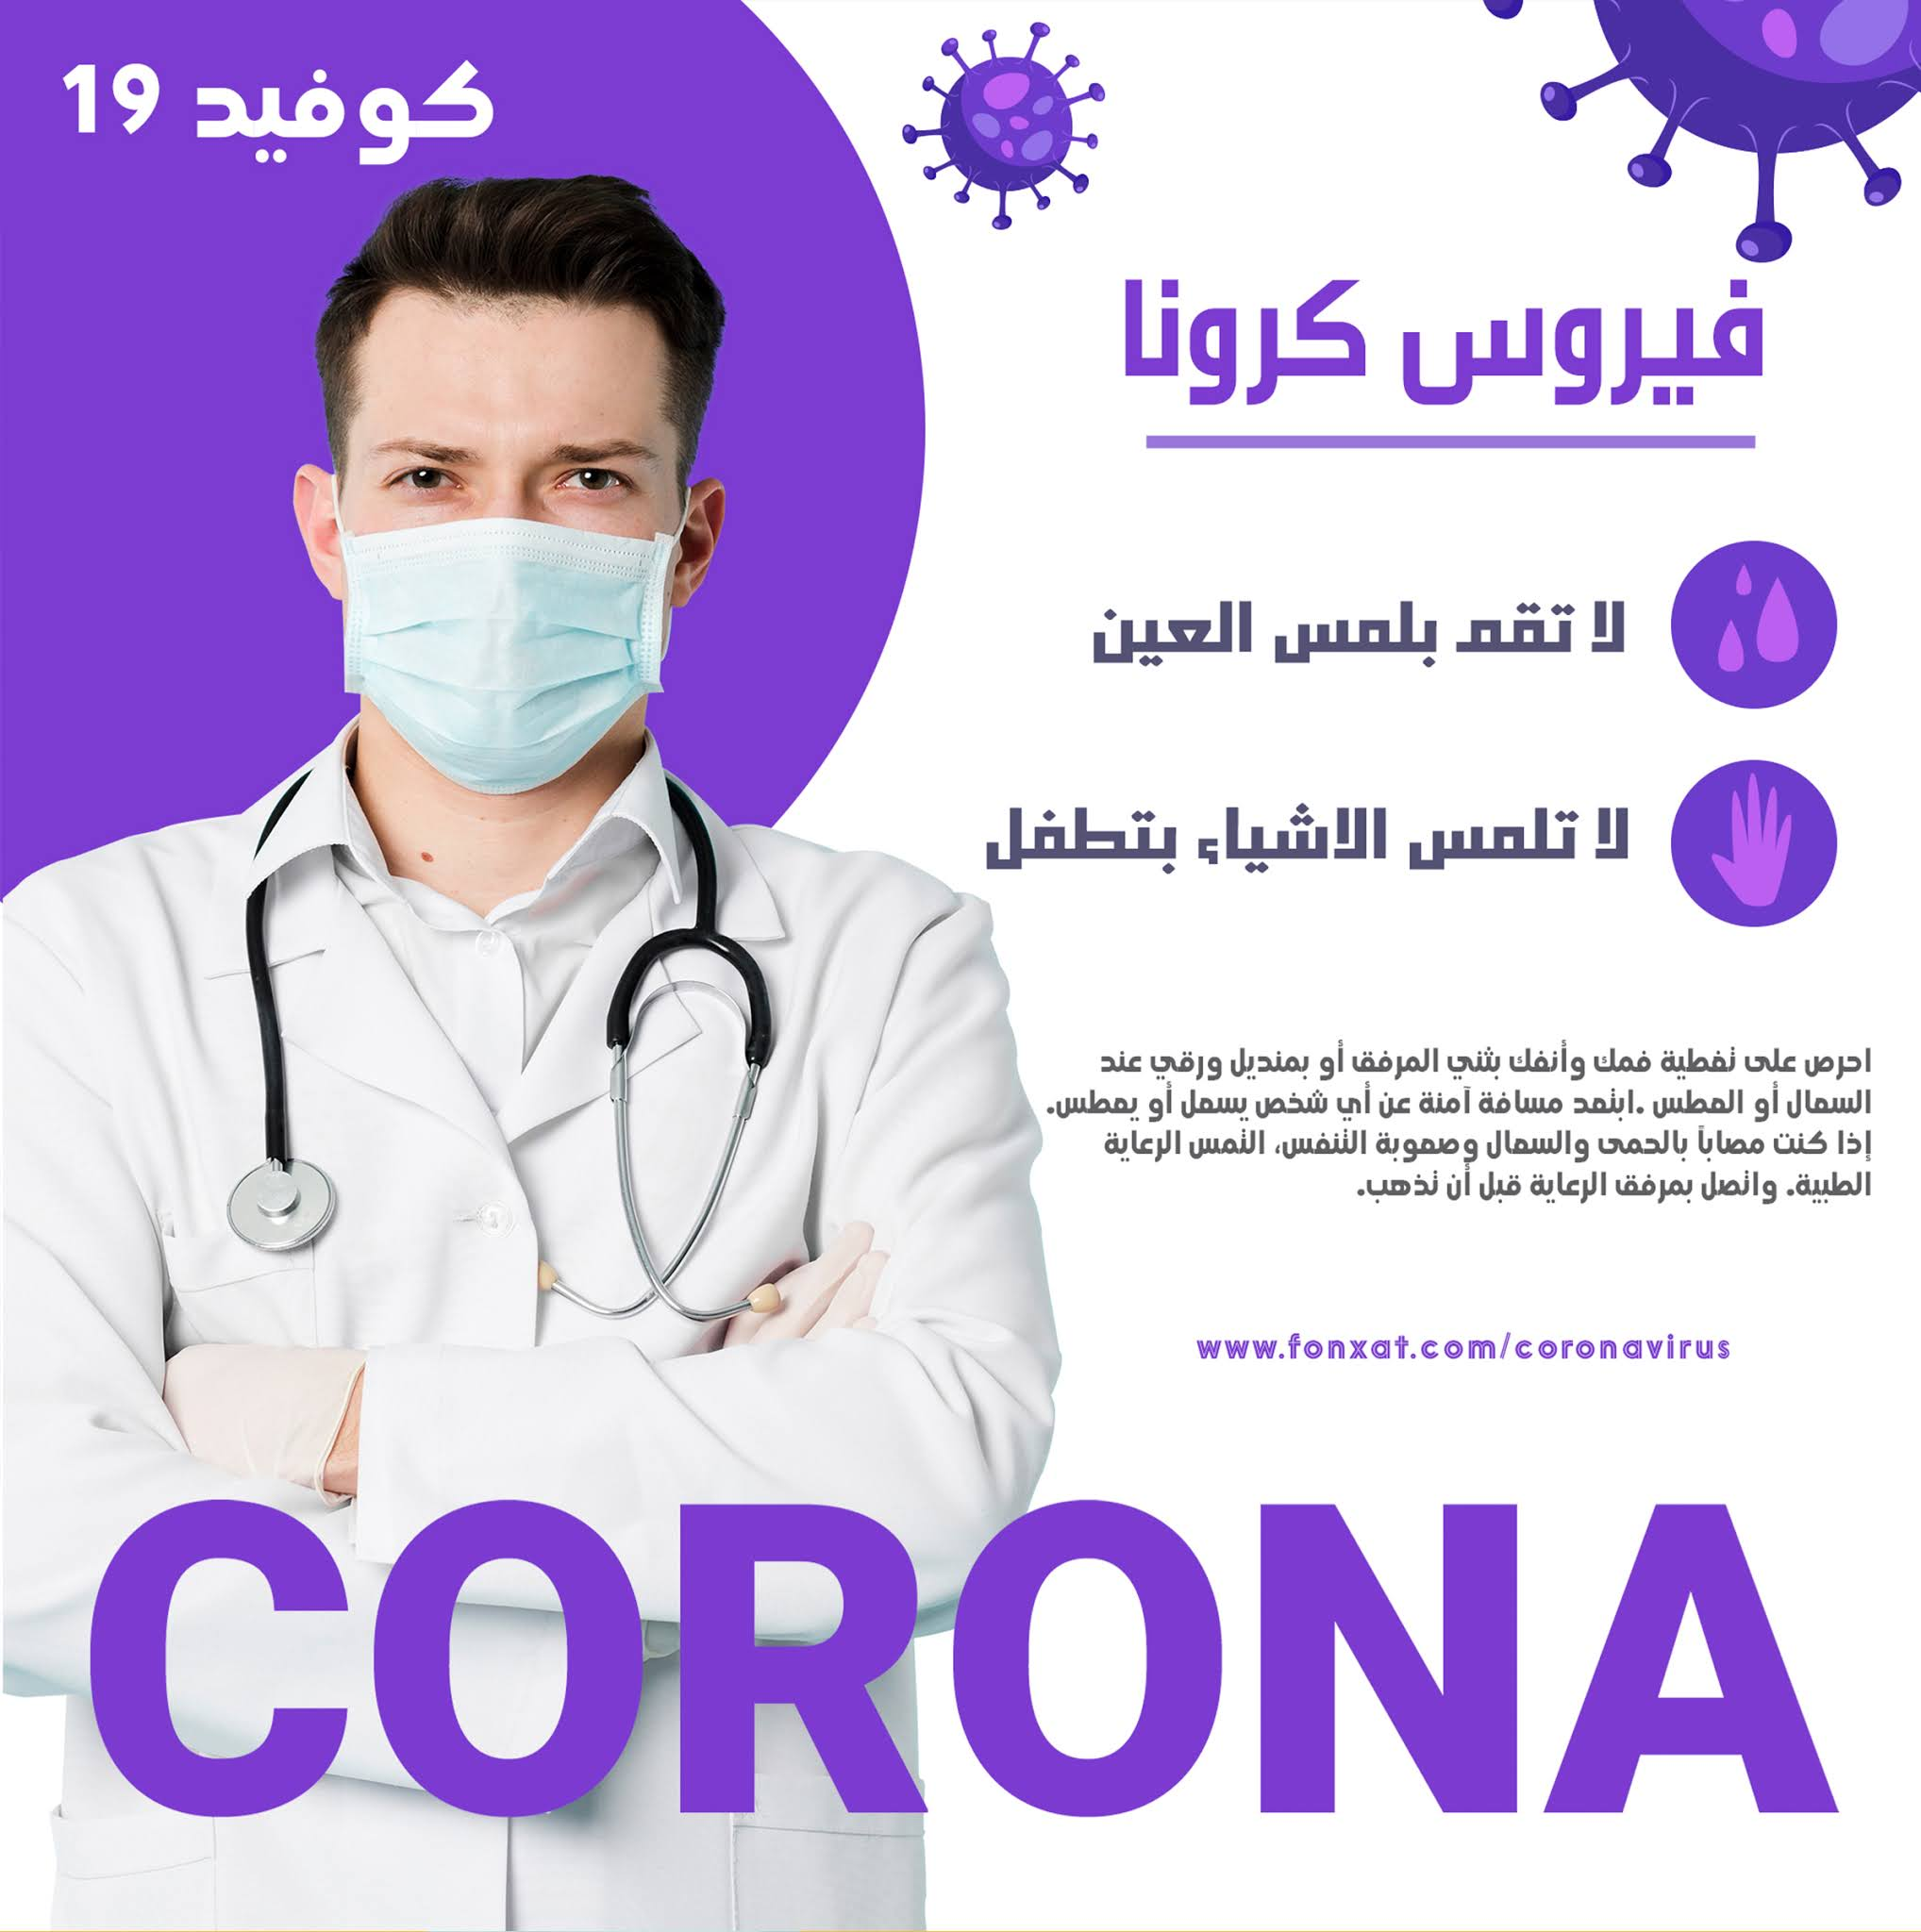 High quality Coronavirus banner psd file for doctor wearing stethoscope